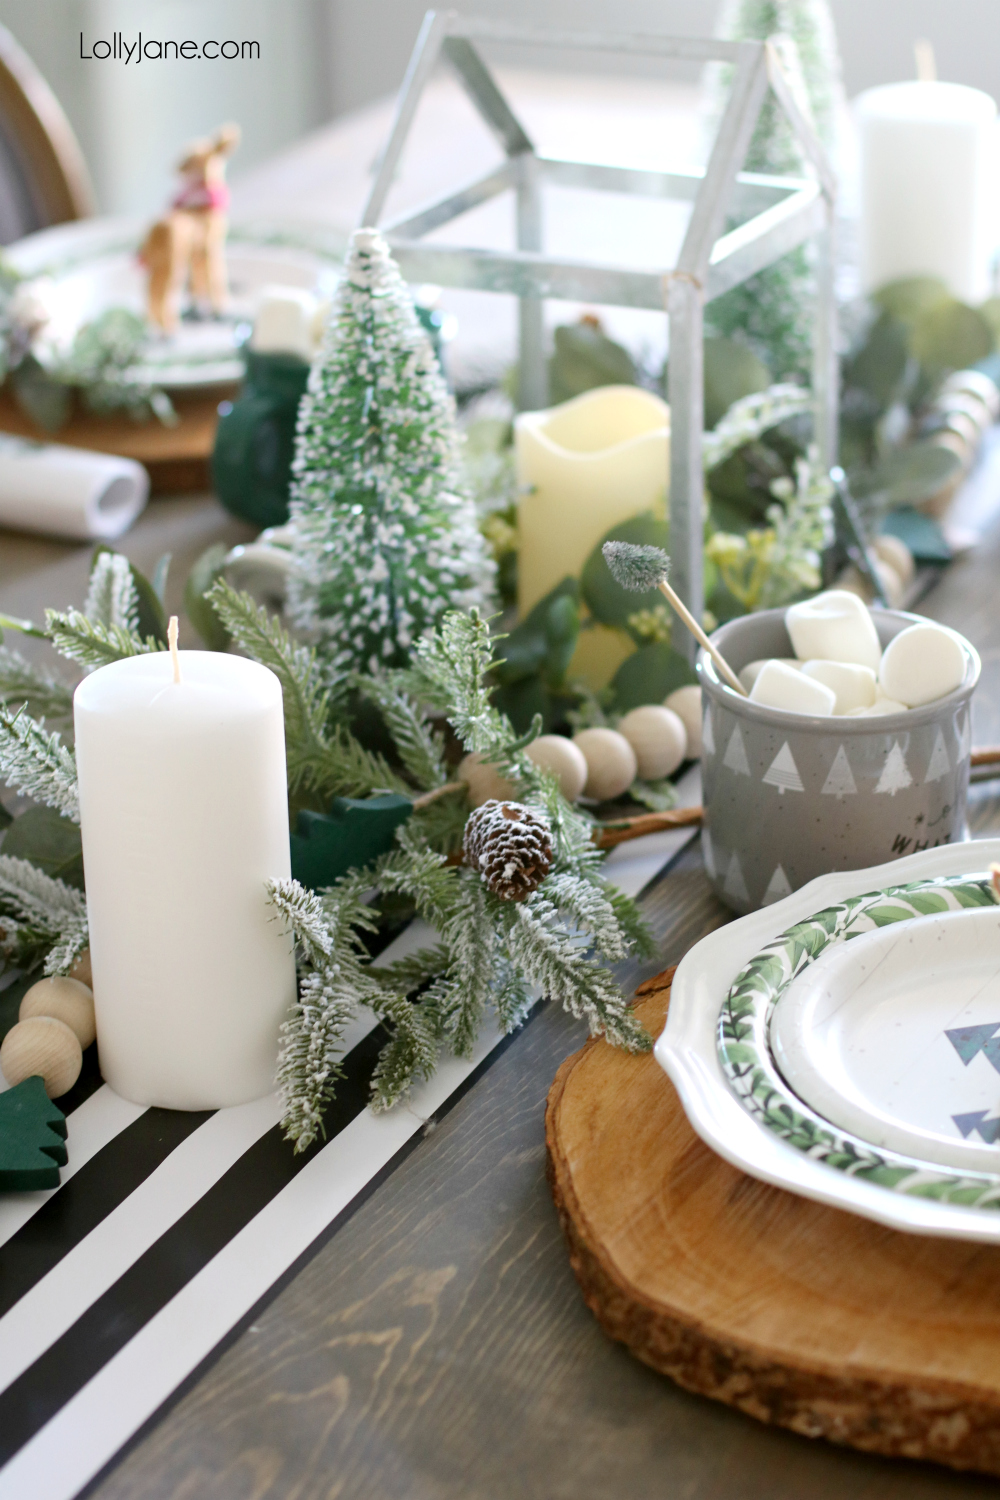 Grab a little of this and a little of that to pull together an amazingly EASY Christmas tablescape! Great for winter, too! (Includes a little DIY that doubles as decor + guest gift!) #christmas #christmastablescape #christmascenterpiece #centerpiece #wintertablescape #diy